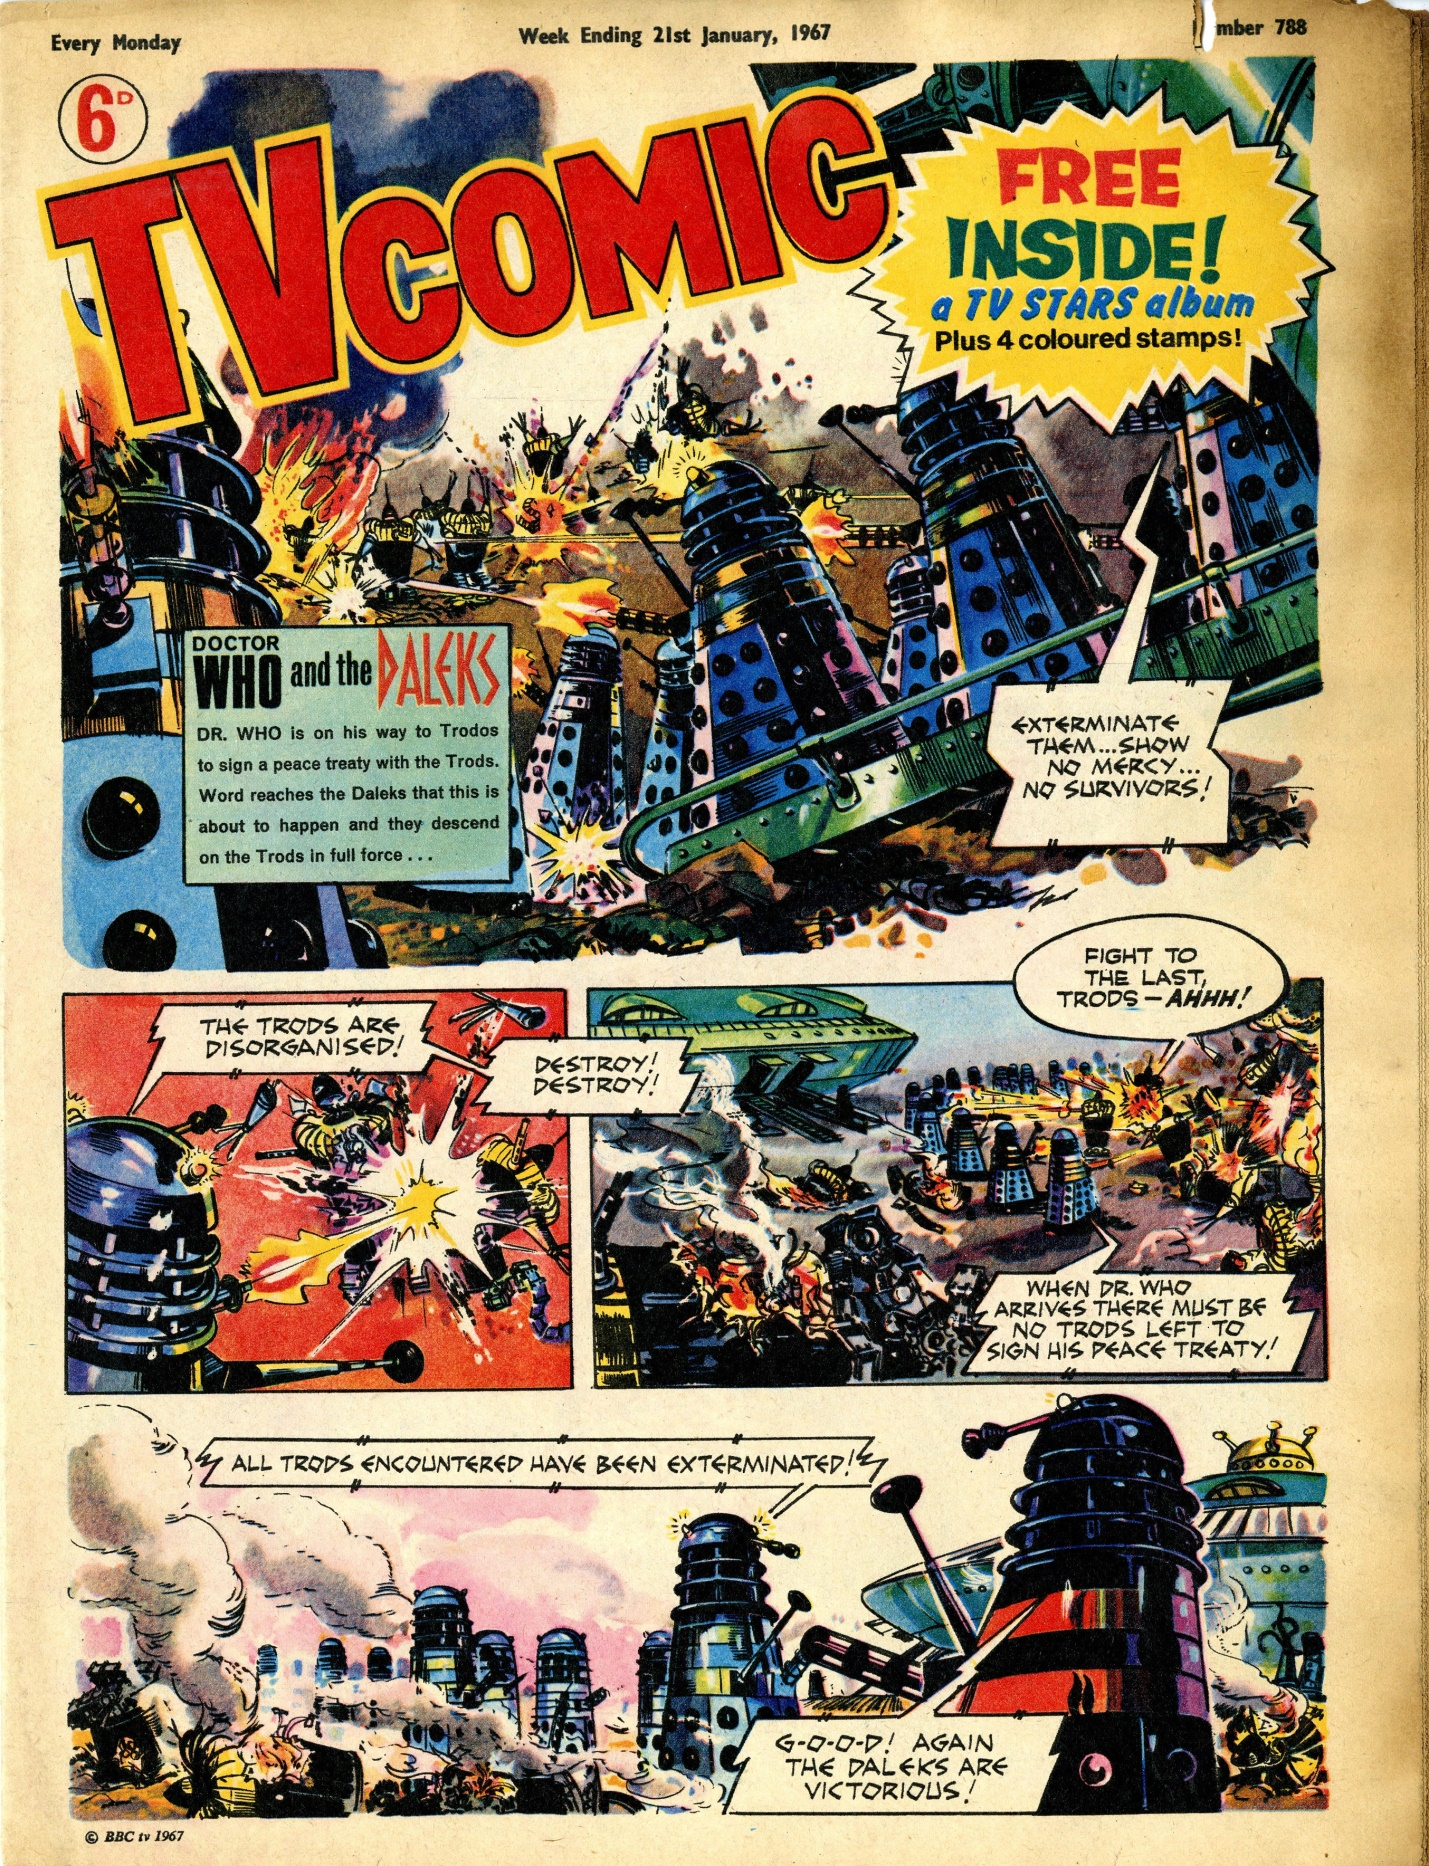 First appearance of the Daleks in TV Comic, number 788, 21 January 1967